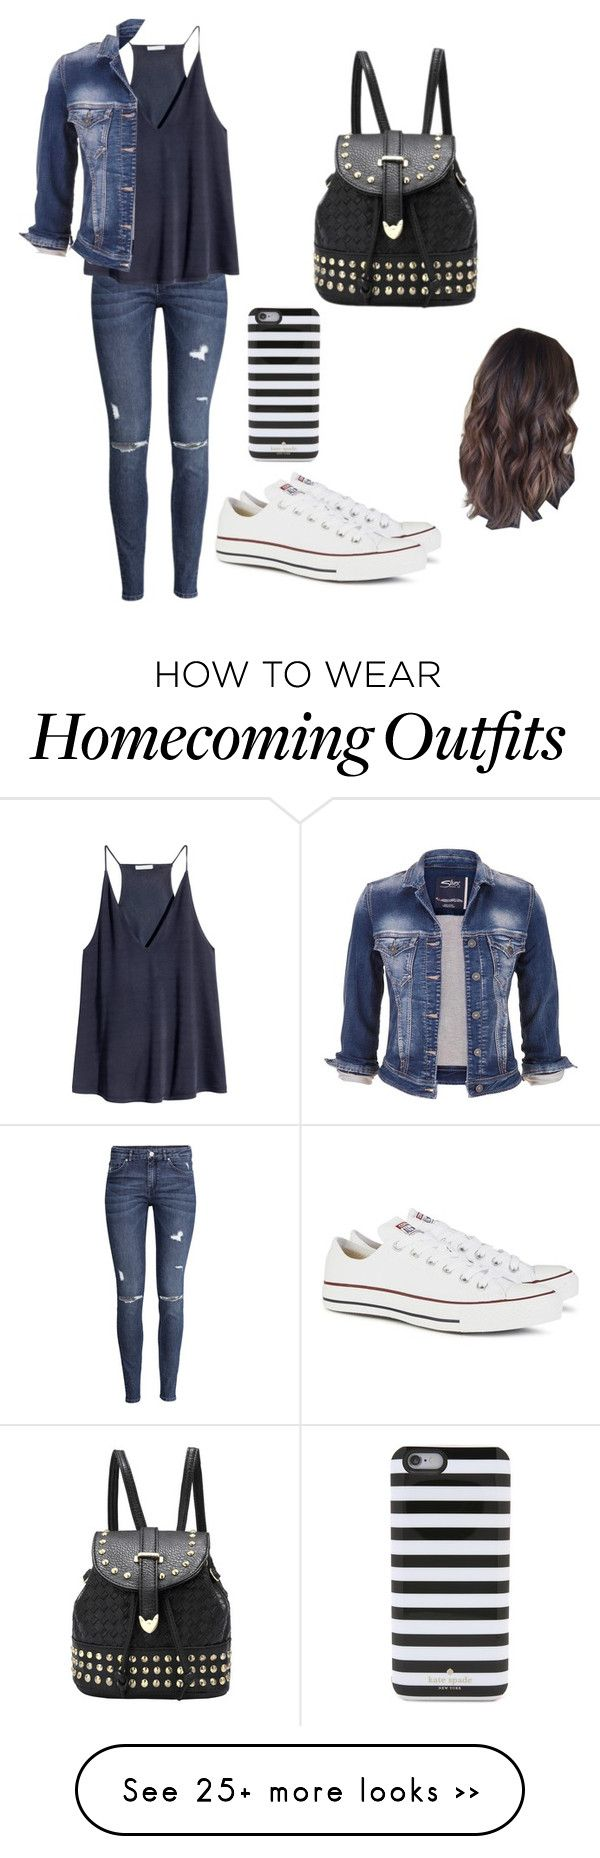 """Homecoming week- DAY #1 Denim"" by pastelpinky on Polyvore featuring Converse, H&M, maurices and Kate Spade"